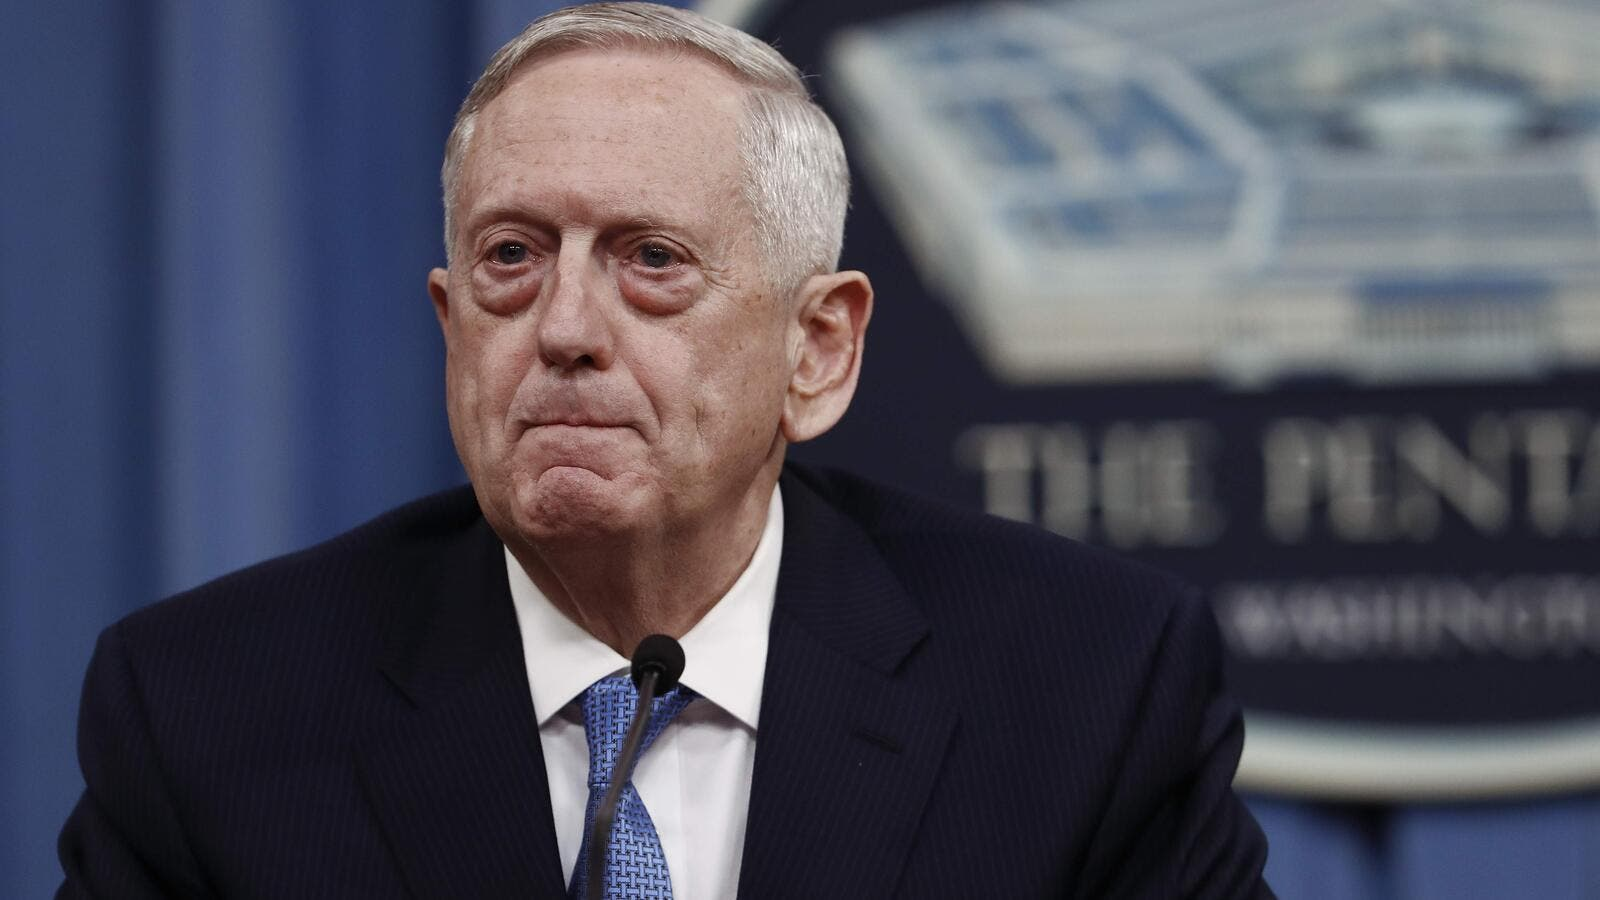 U.S. Defense Secretary Jim Mattis said the United States is ready to carry out more attacks on Syria if Assad fails to heed the message of last week's allied cruise missile strike. (AFP/ File Photo)